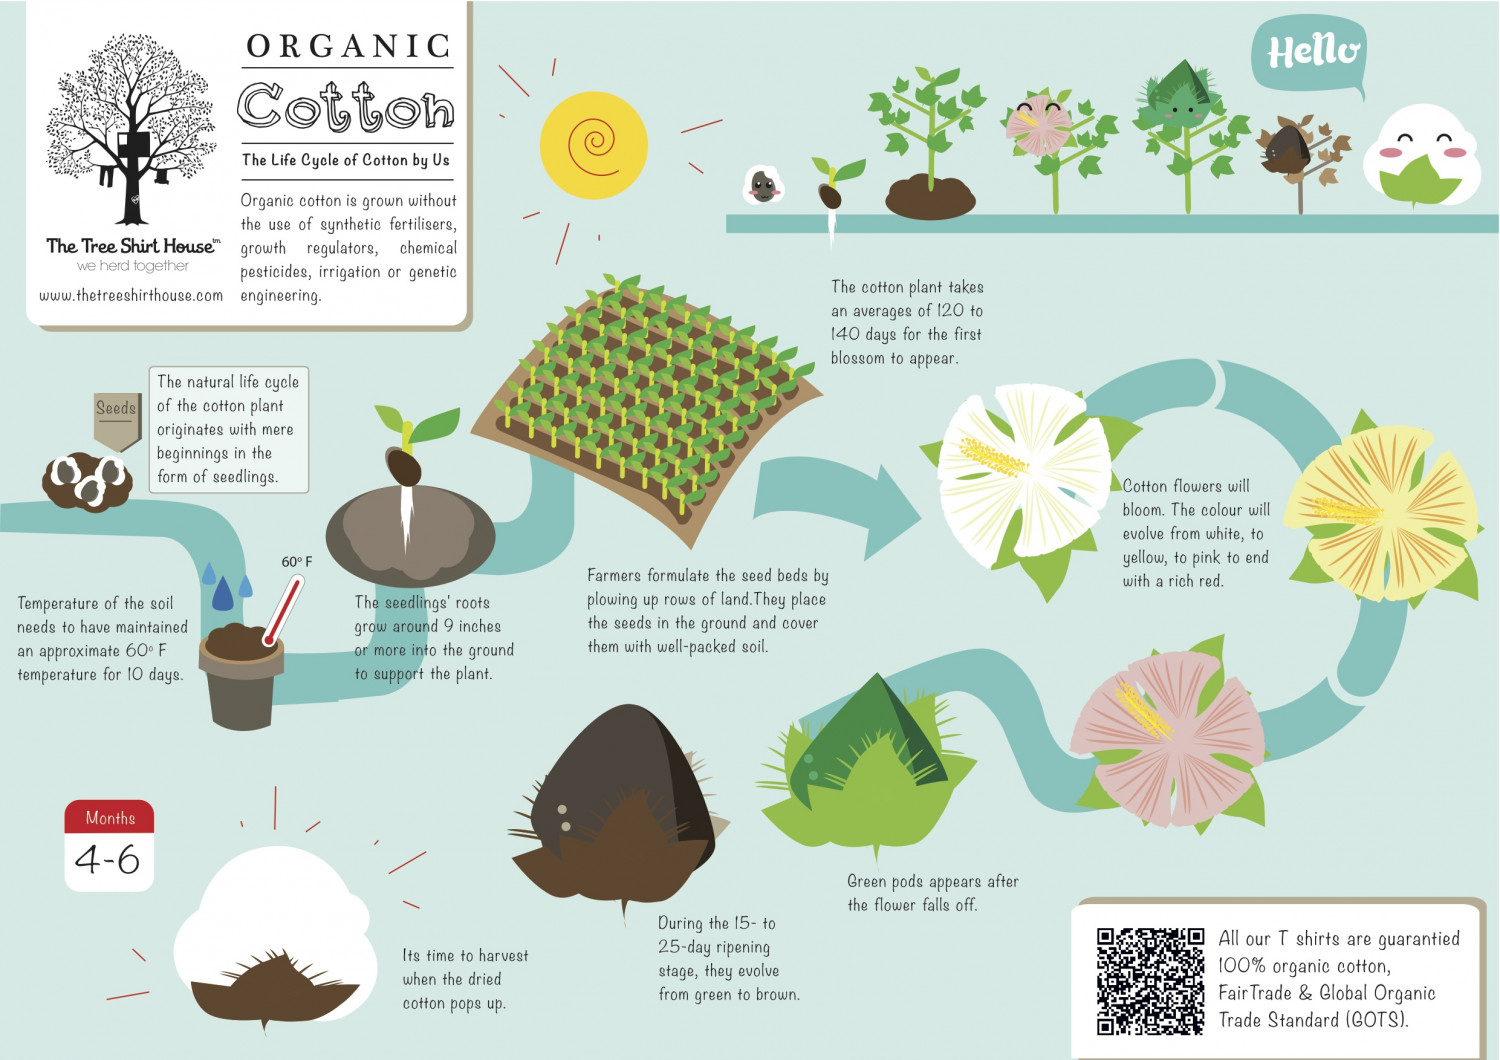 The TSH's organic cotton's lifecycle Infographic